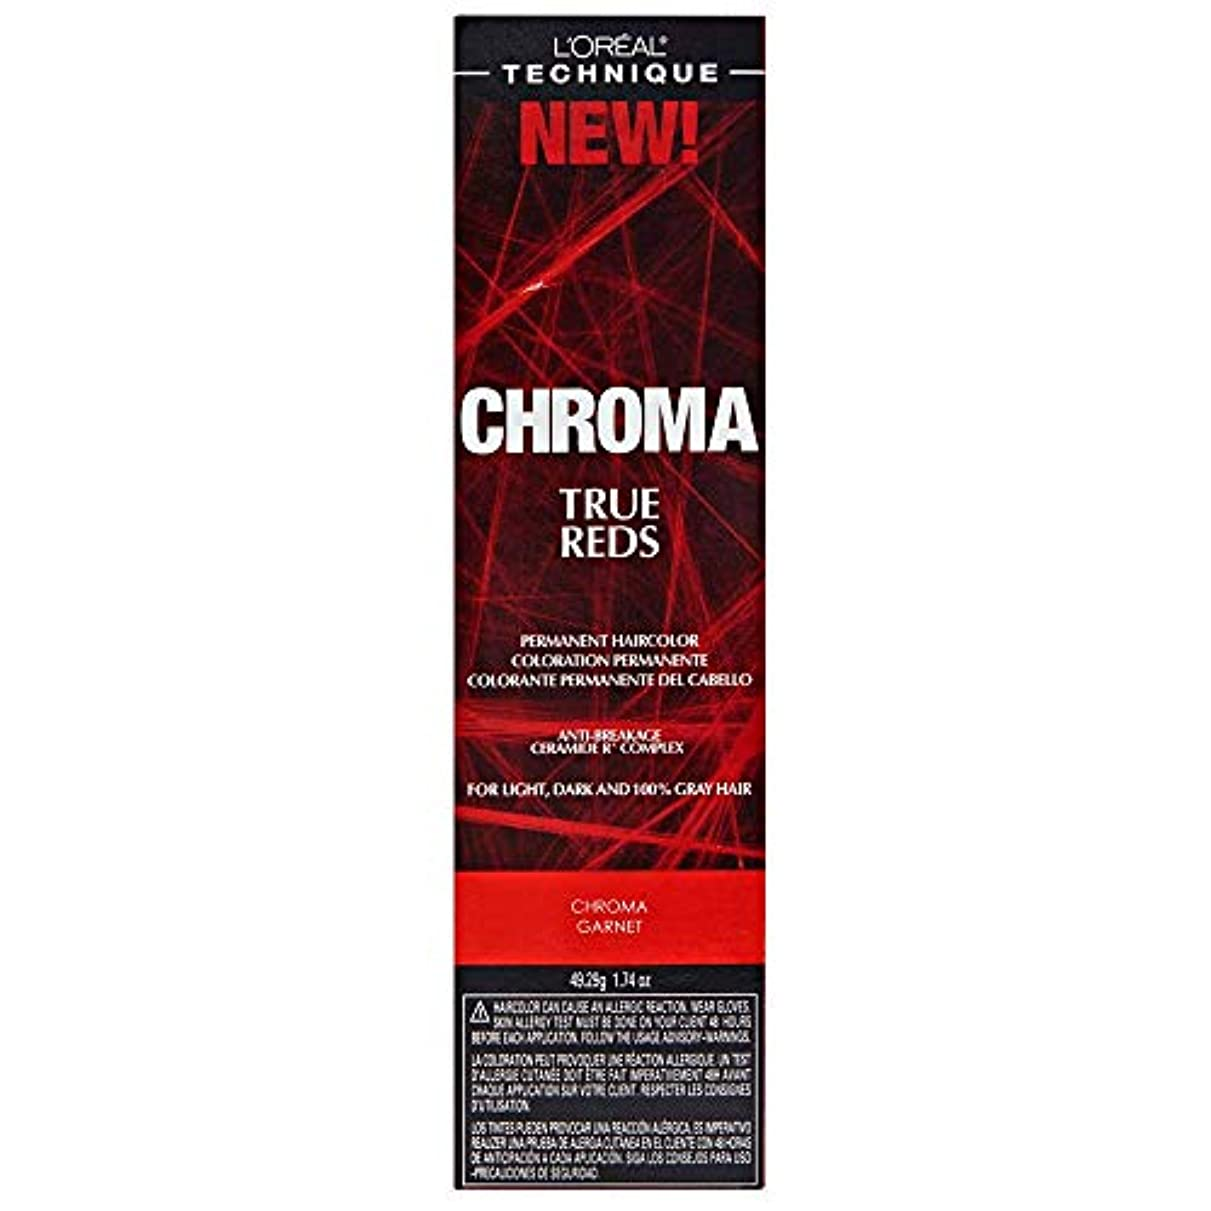 腕蜜ラインナップL'Oreal Technique Chroma True Reds - Chroma Garnet - 1.74oz / 49.29g